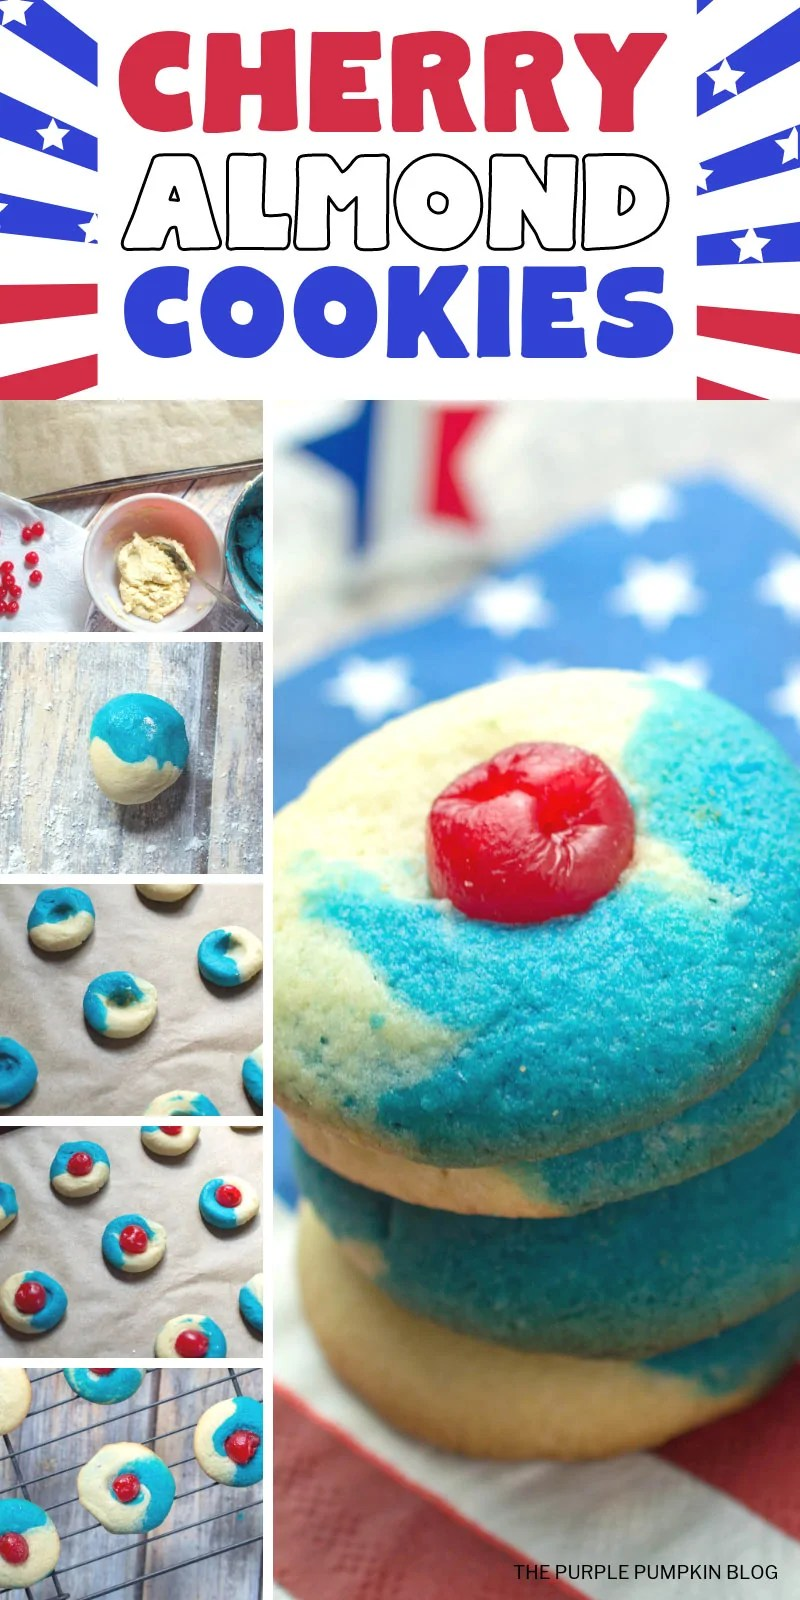 A collage of images demonstrating how to make cherry almond cookies. Pictures include bowls of colored dough, followed by a ball of dough, and then the formed cookies. Finally a stack of baked red, white, and blue cookies with a cherry on top.